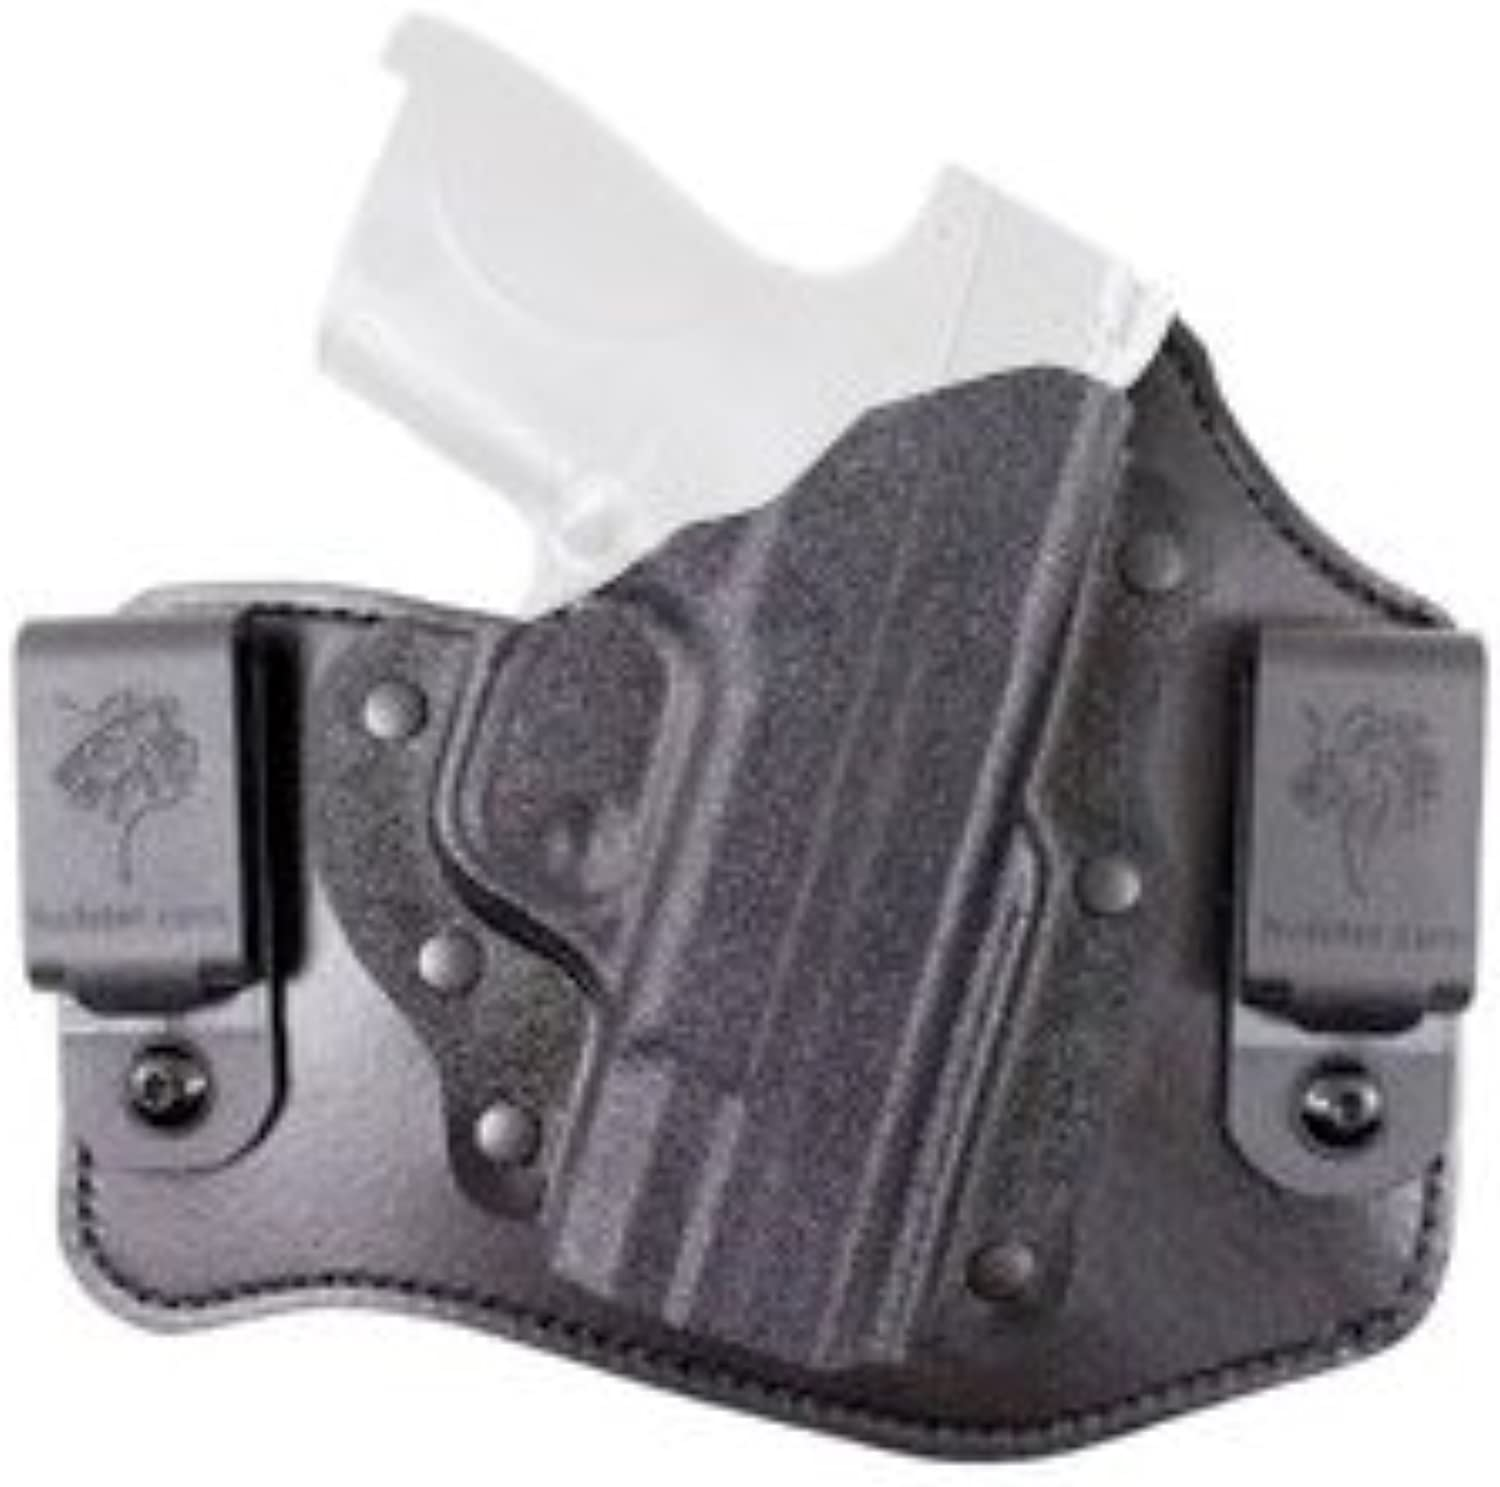 DeSantis Intruder SandW MandP Shield 9 40 - Black Right Hand